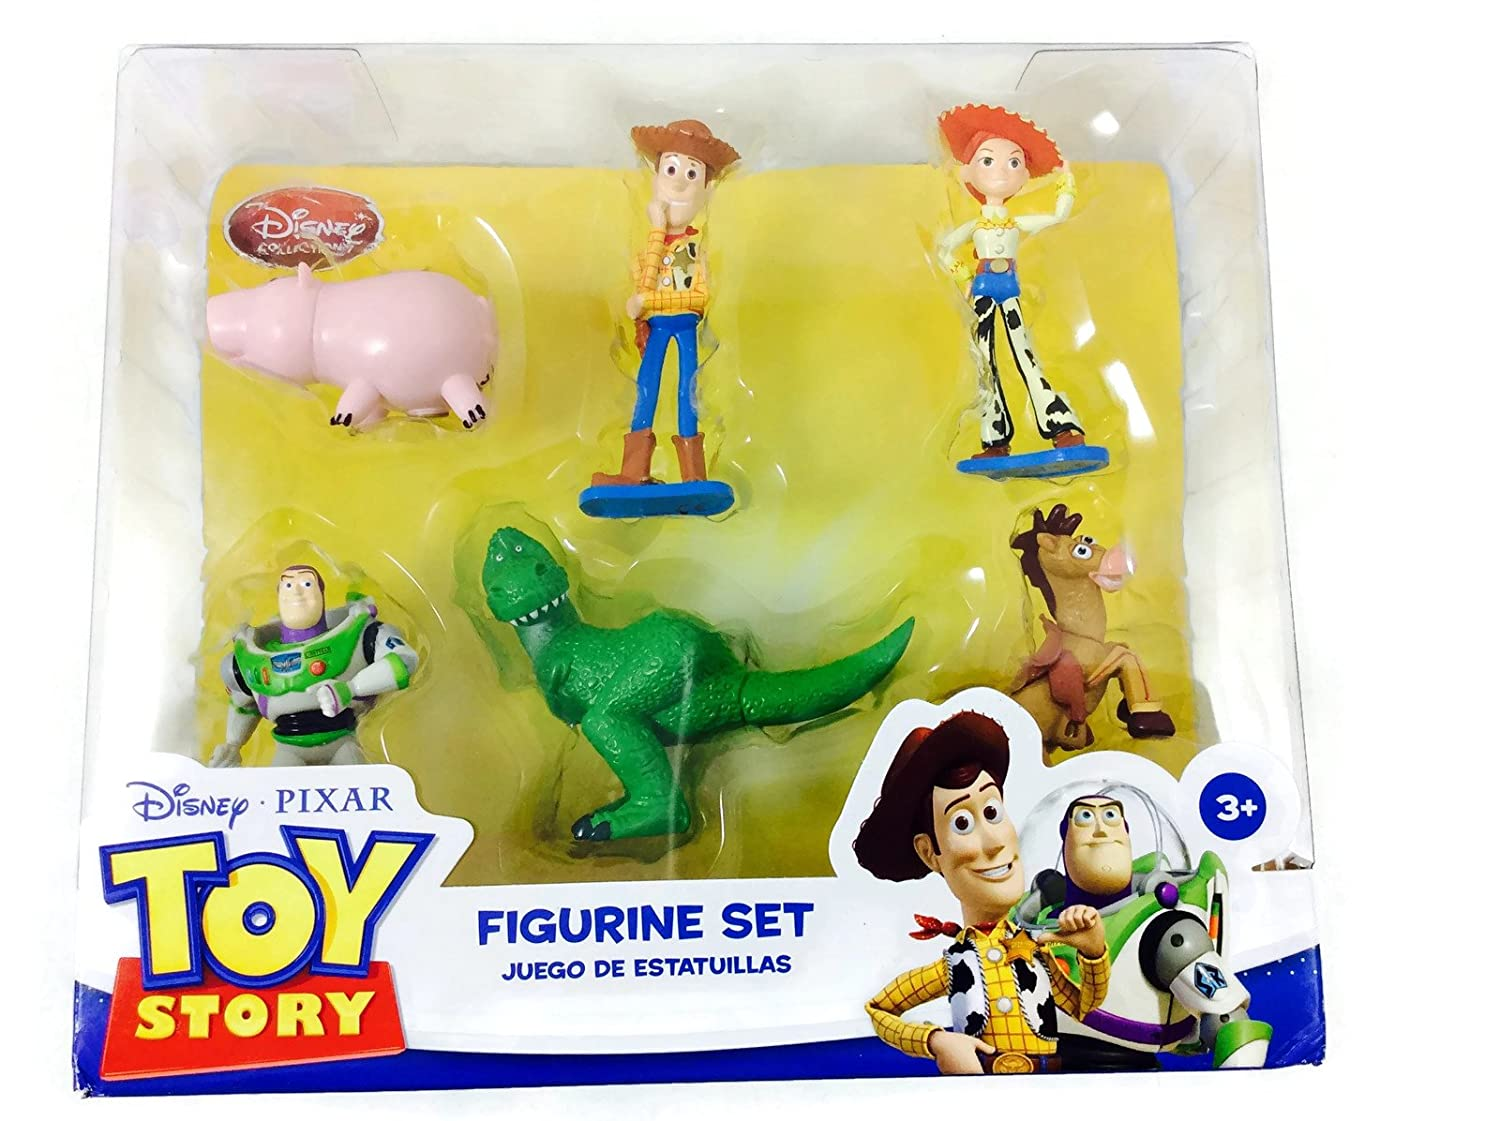 Disney Toy Story 6-pc Figure Set Generic SG/_B00GF0R13I/_US